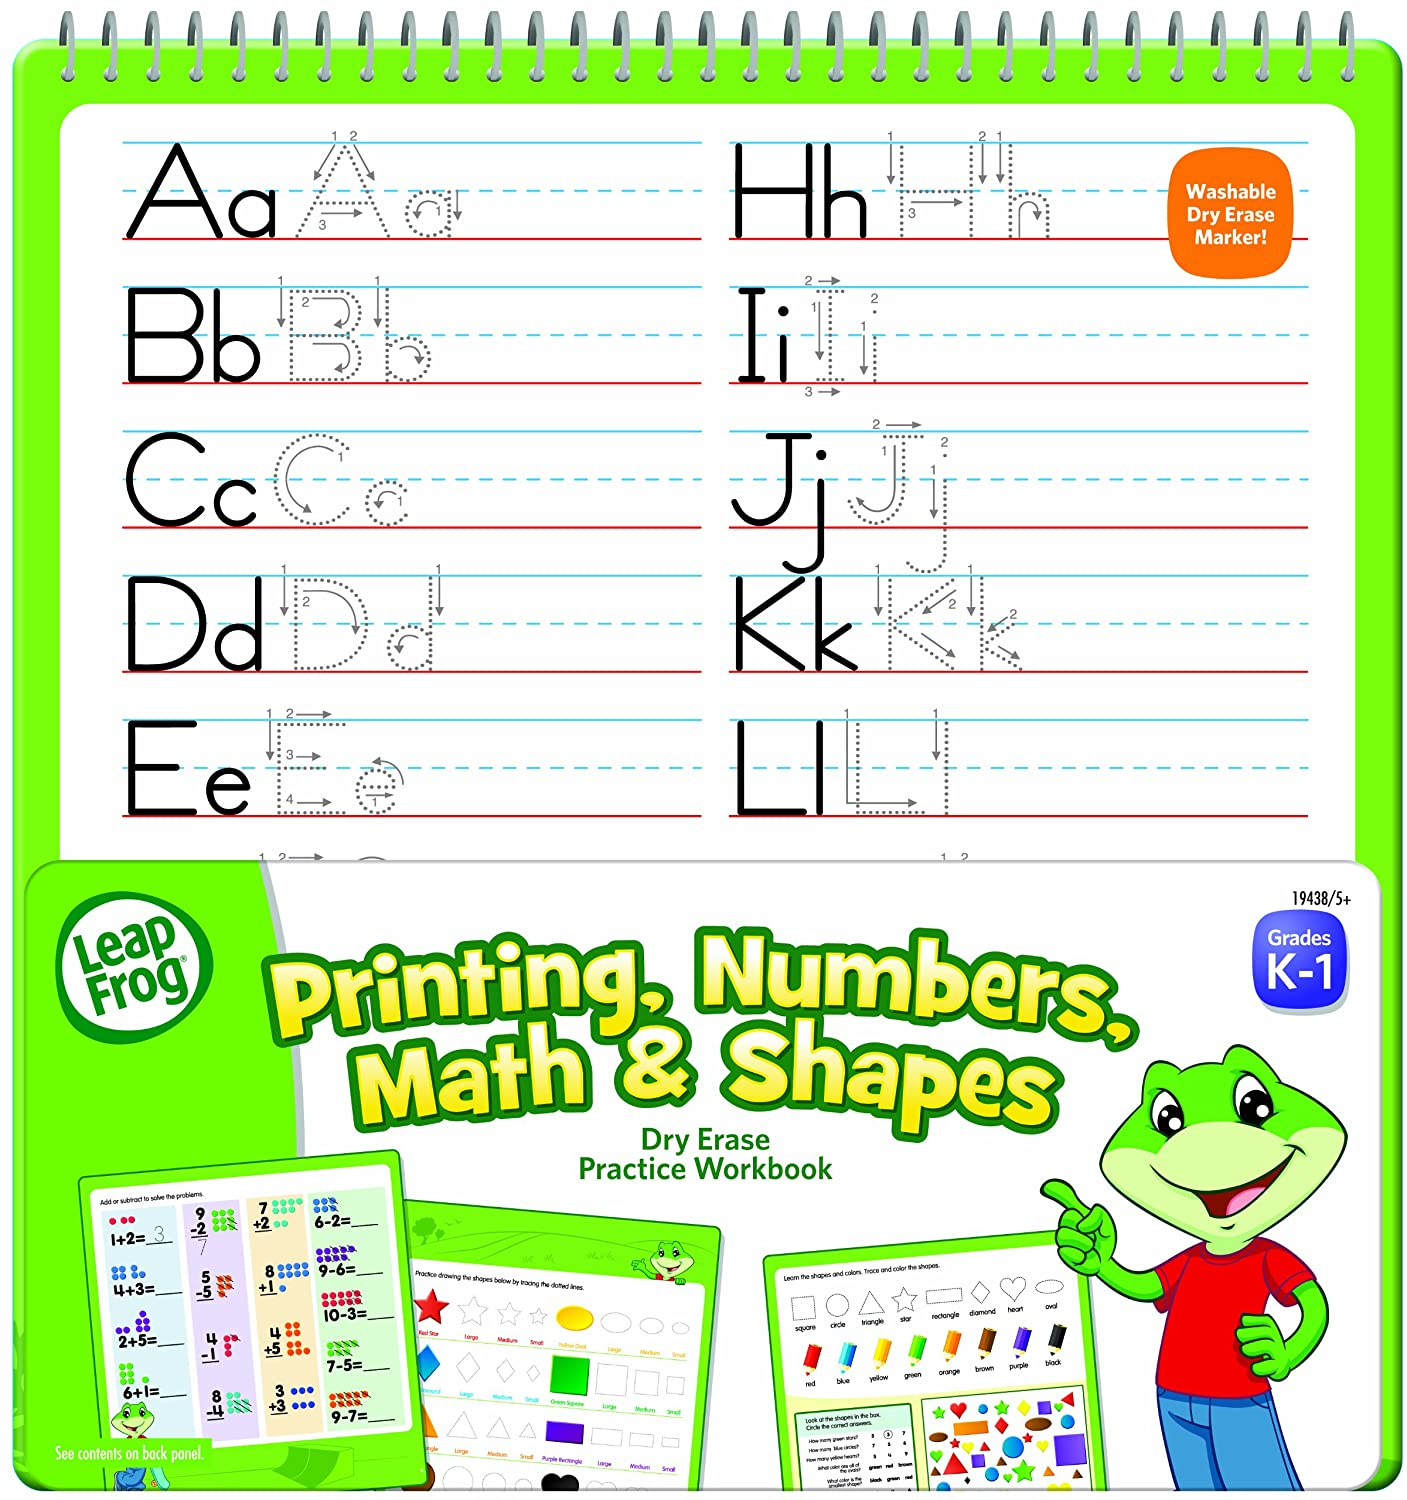 Amazon.com: LeapFrog Printing, Numbers, Math and Shapes Dry Erase ...